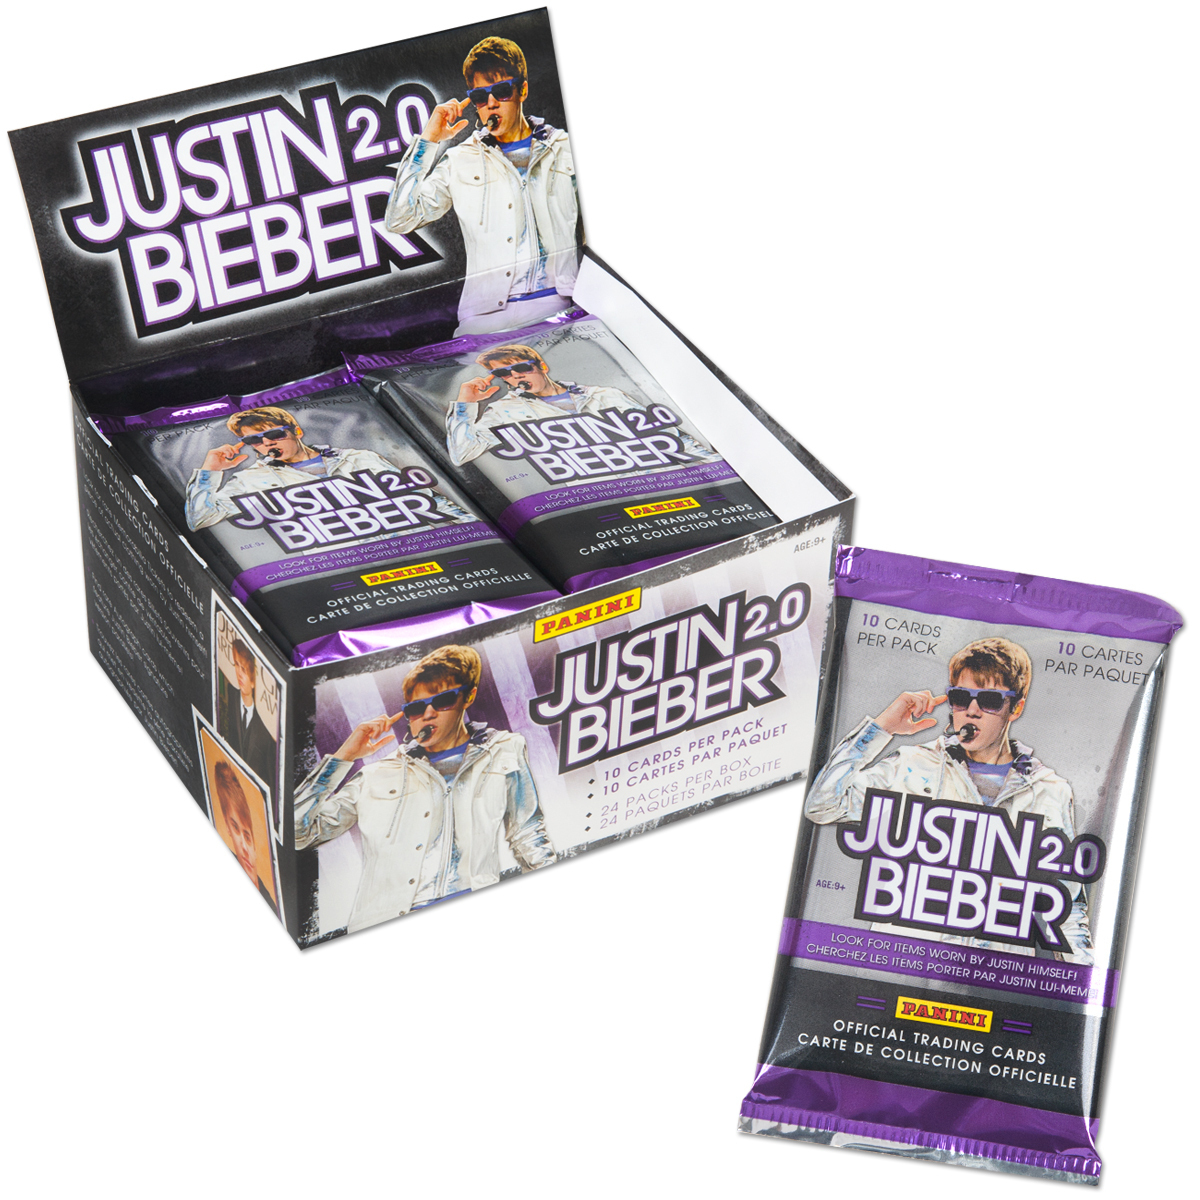 Justin Bieber 2.0 Trading Cards - 24 Pack Box